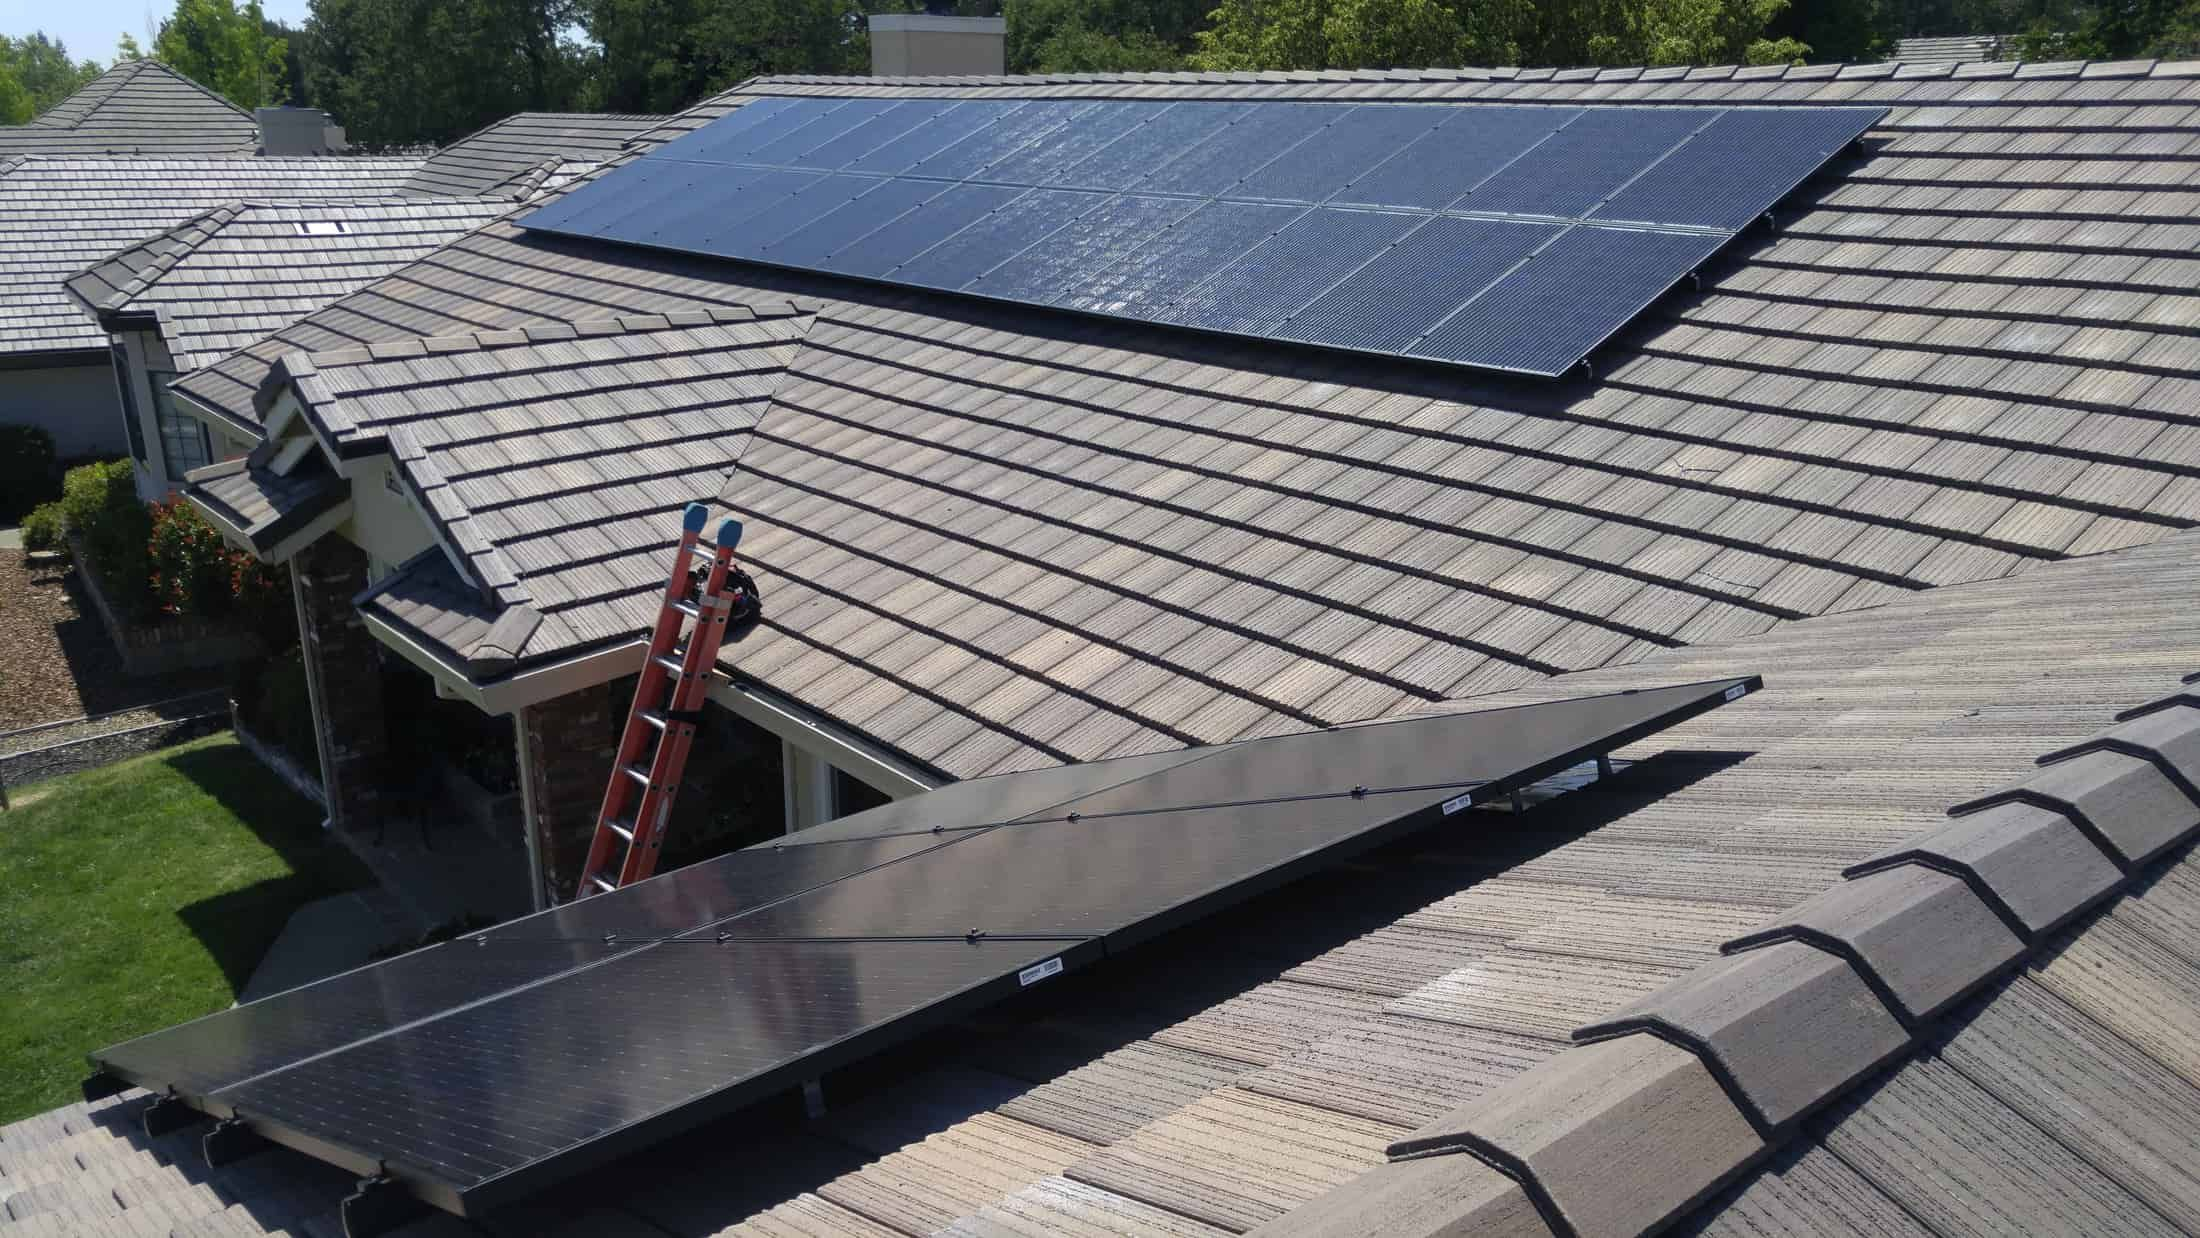 Mounting Solar Panels On Concrete Tile Roof In 2020 Solar Panels Concrete Tiles Solar Panel Installation